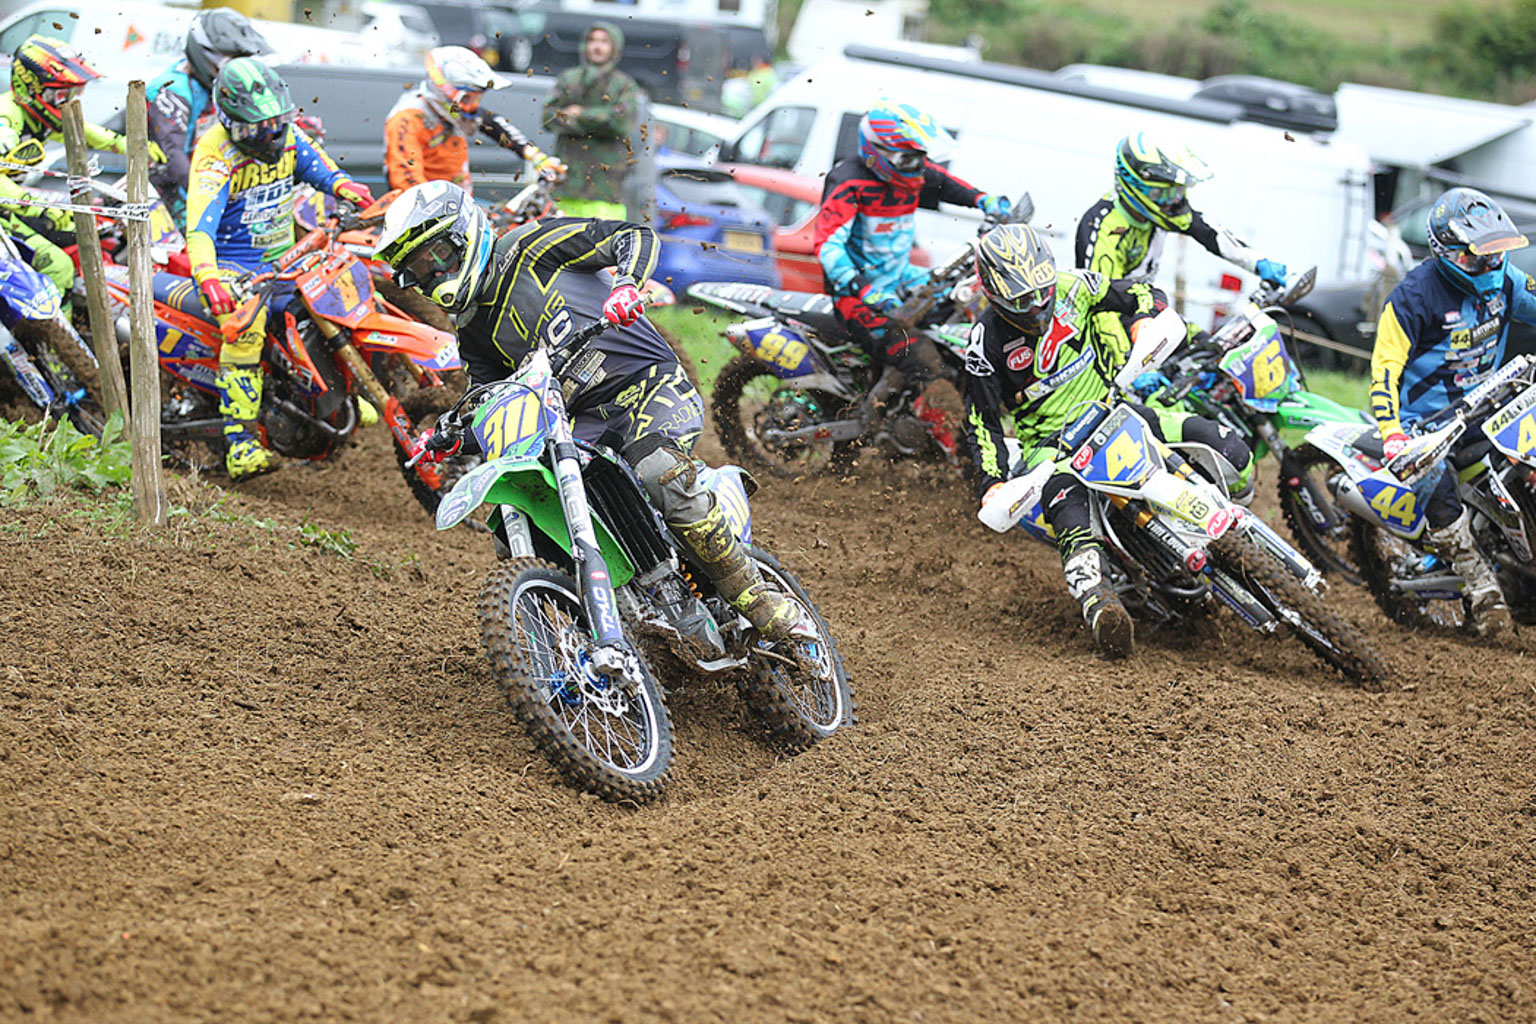 Lewis King(311) grabs the MX2 holeshot followed by Bradley Tranter(4)